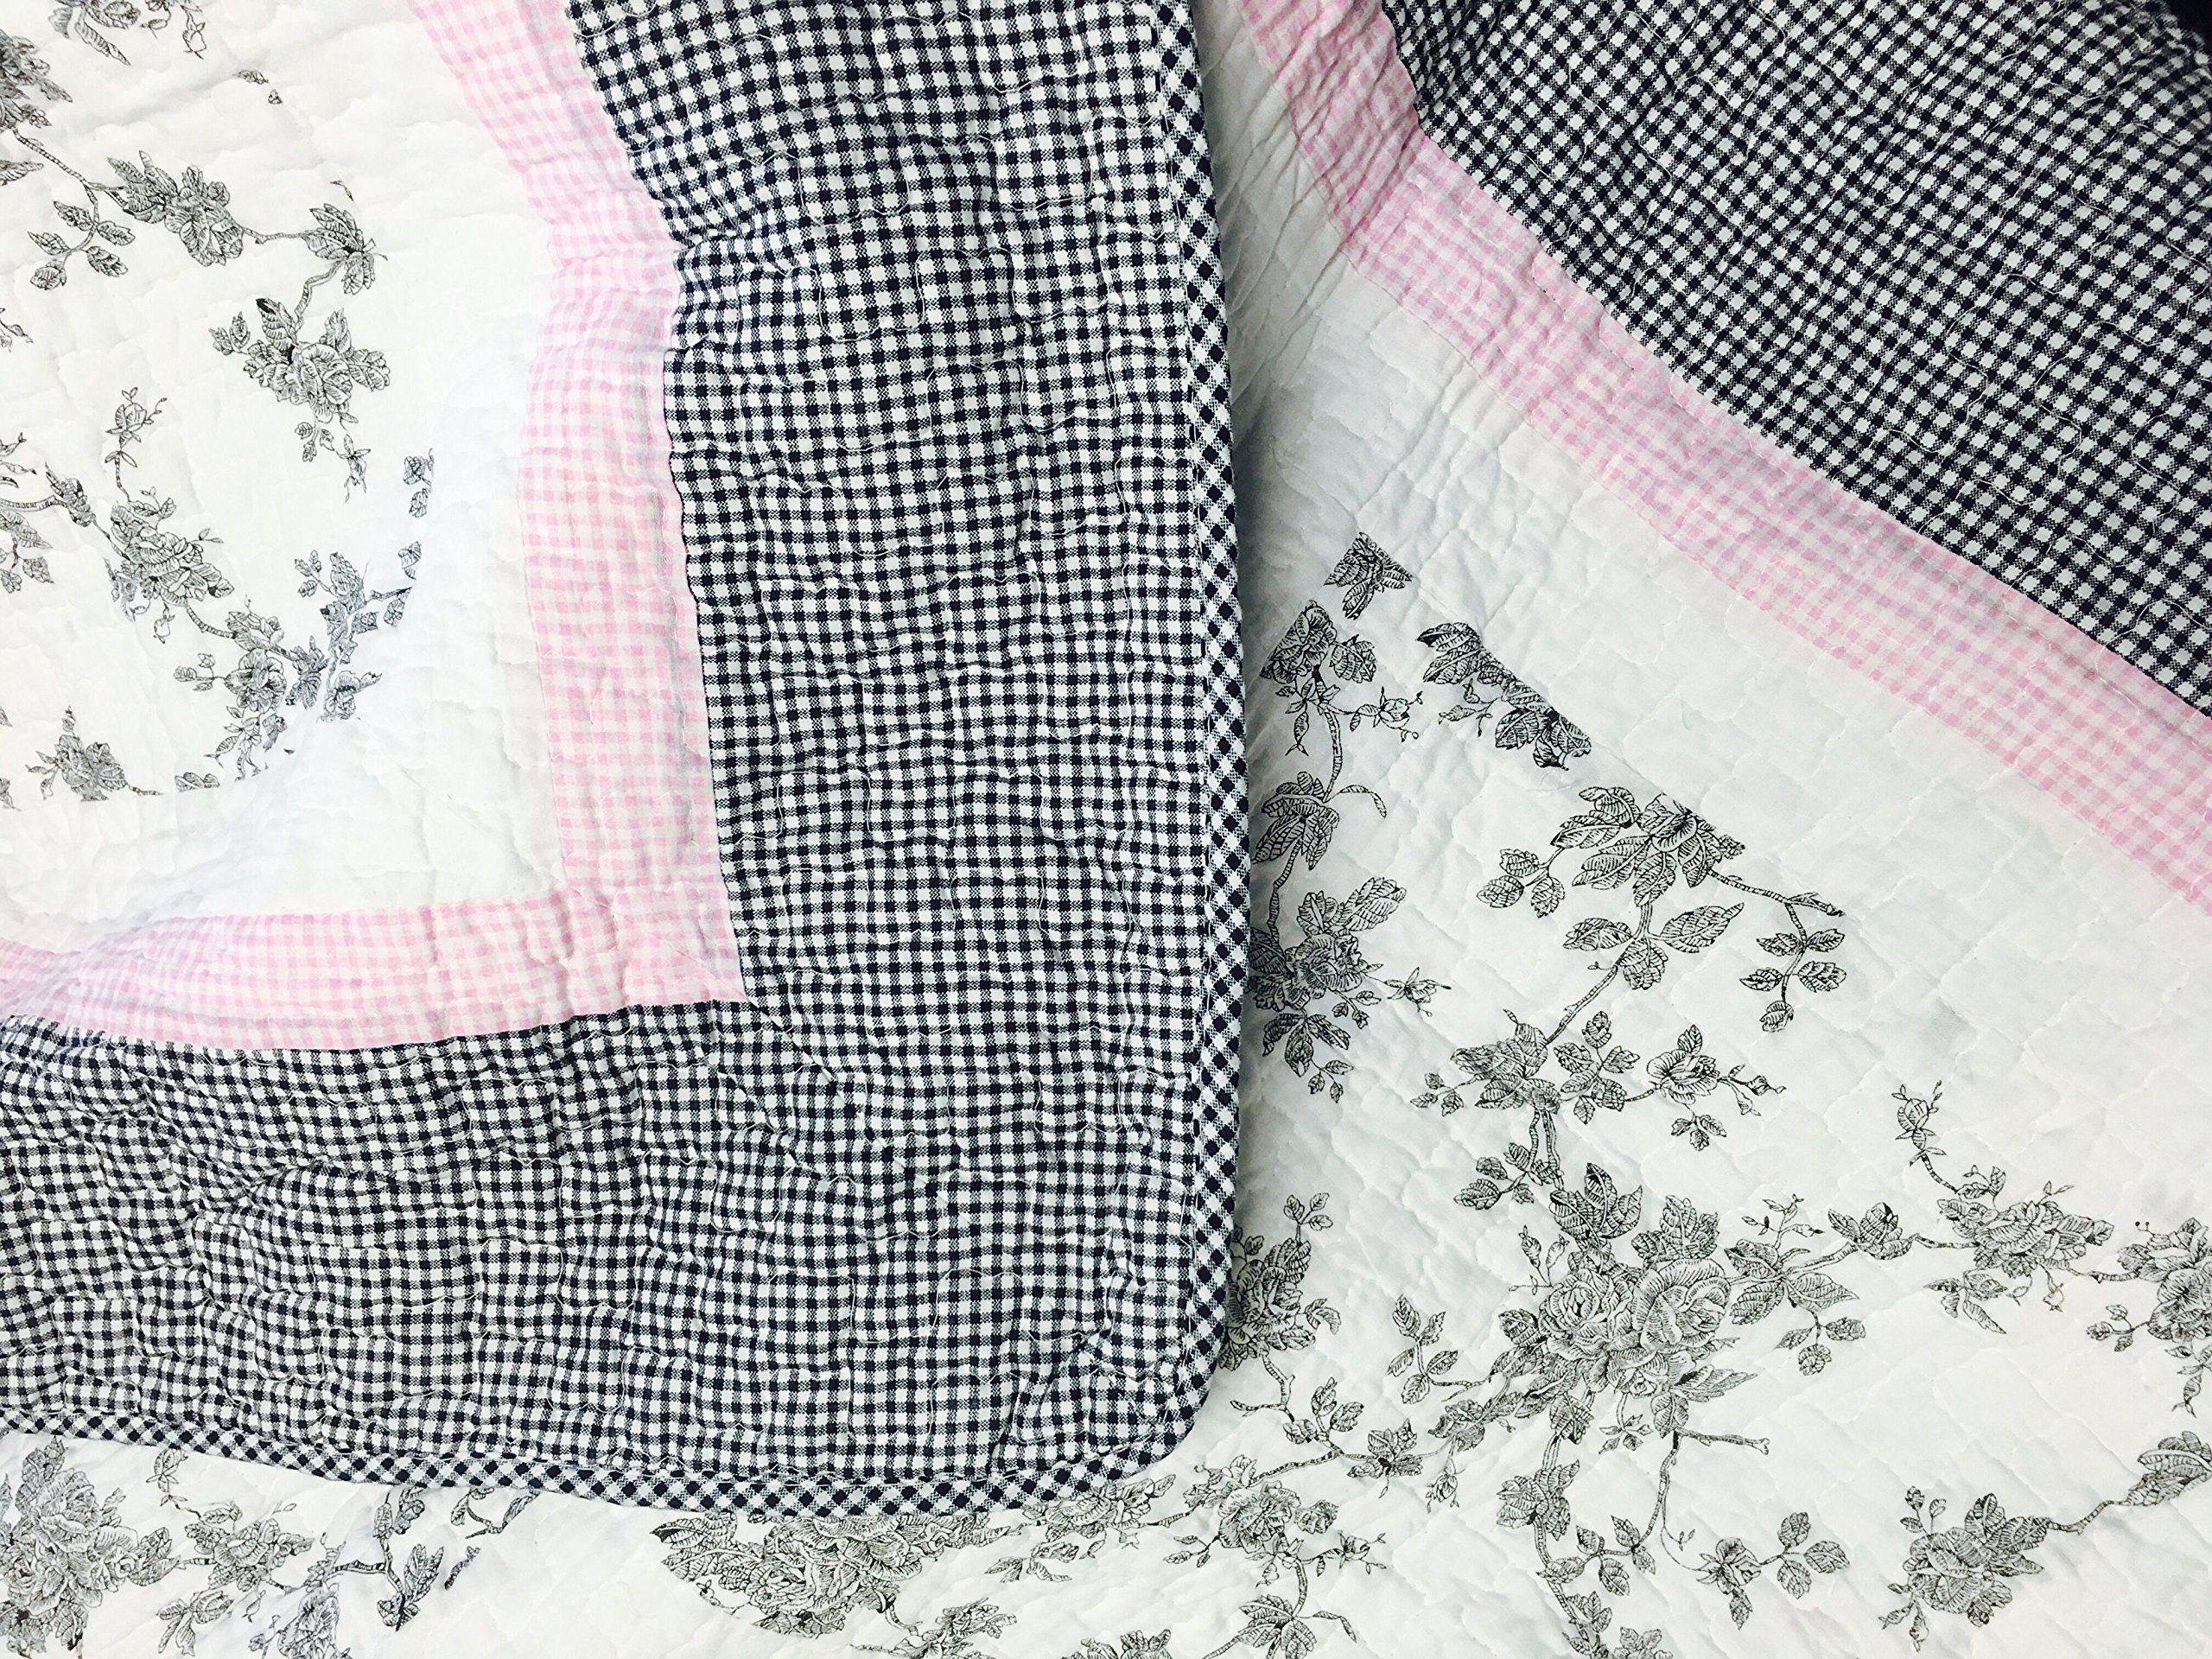 Cozy Line Home Fashions Scottie Pup Pink White Grey Dog Flower Pattern Printed Patchwork Cotton Bedding Quilt Set Coverlet Bedspreads(Grey/White, Queen - 3 Piece: 1 Quilt + 2 Standard Shams) by Cozy Line Home Fashions (Image #4)